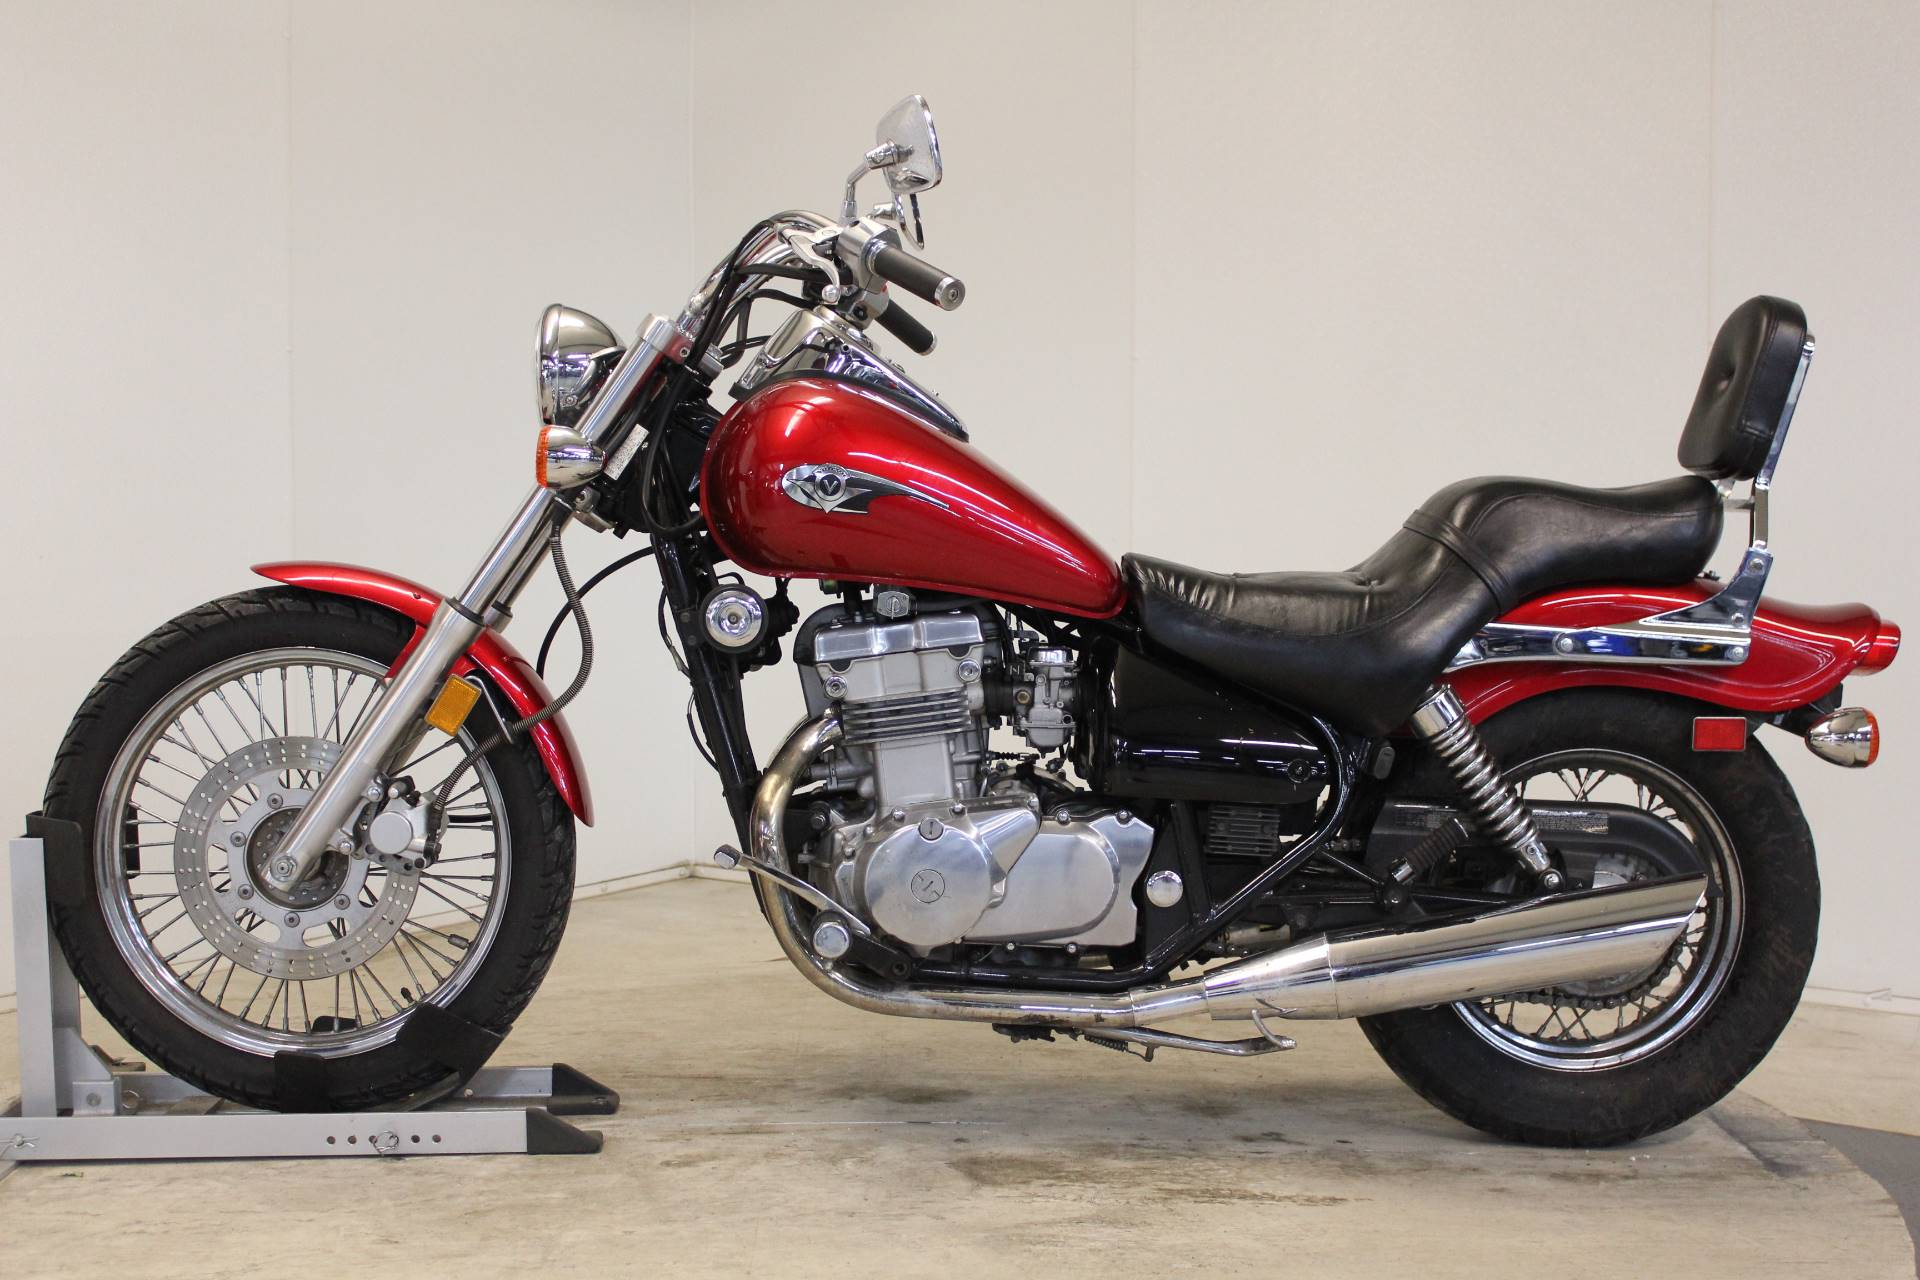 2006 Kawasaki Vulcan® 500 LTD in Pittsfield, Massachusetts